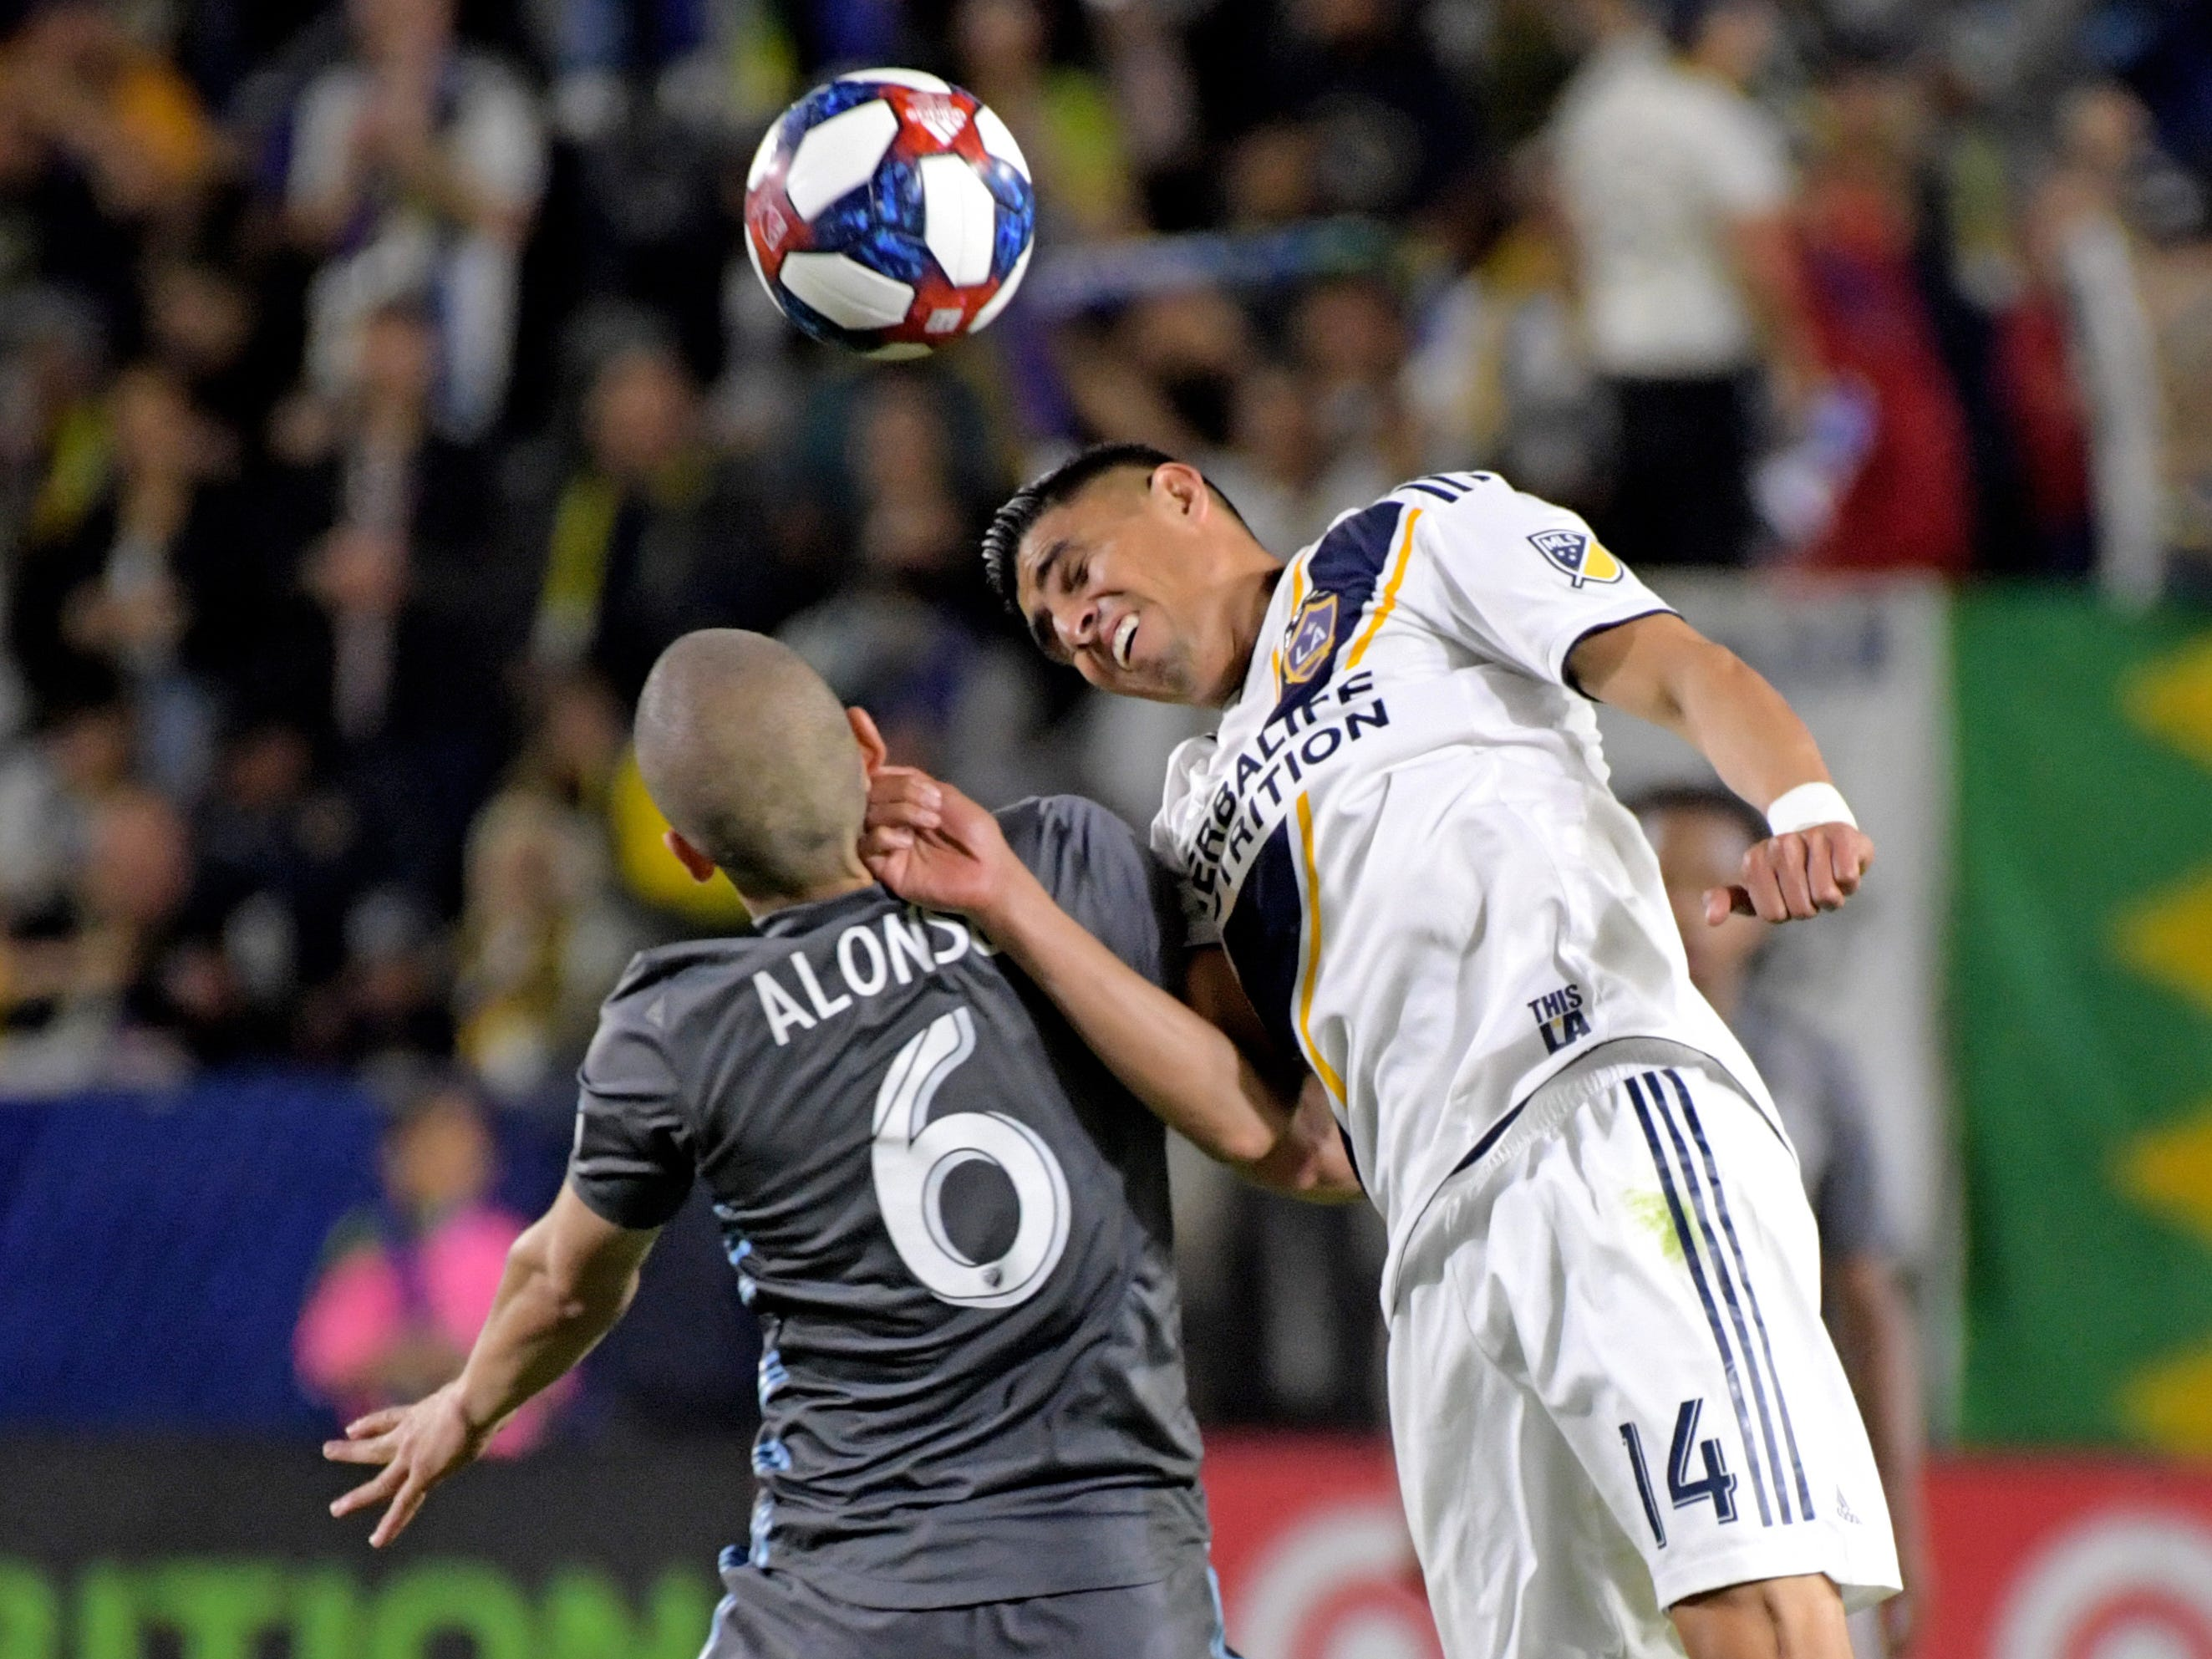 March 16: LA Galaxy midfielder Joe Corona (14) heads the ball against Minnesota United midfielder Osvaldo Alonso (6) in the second half at Dignity Health Sports Park. The Galaxy won the game, 3-2.